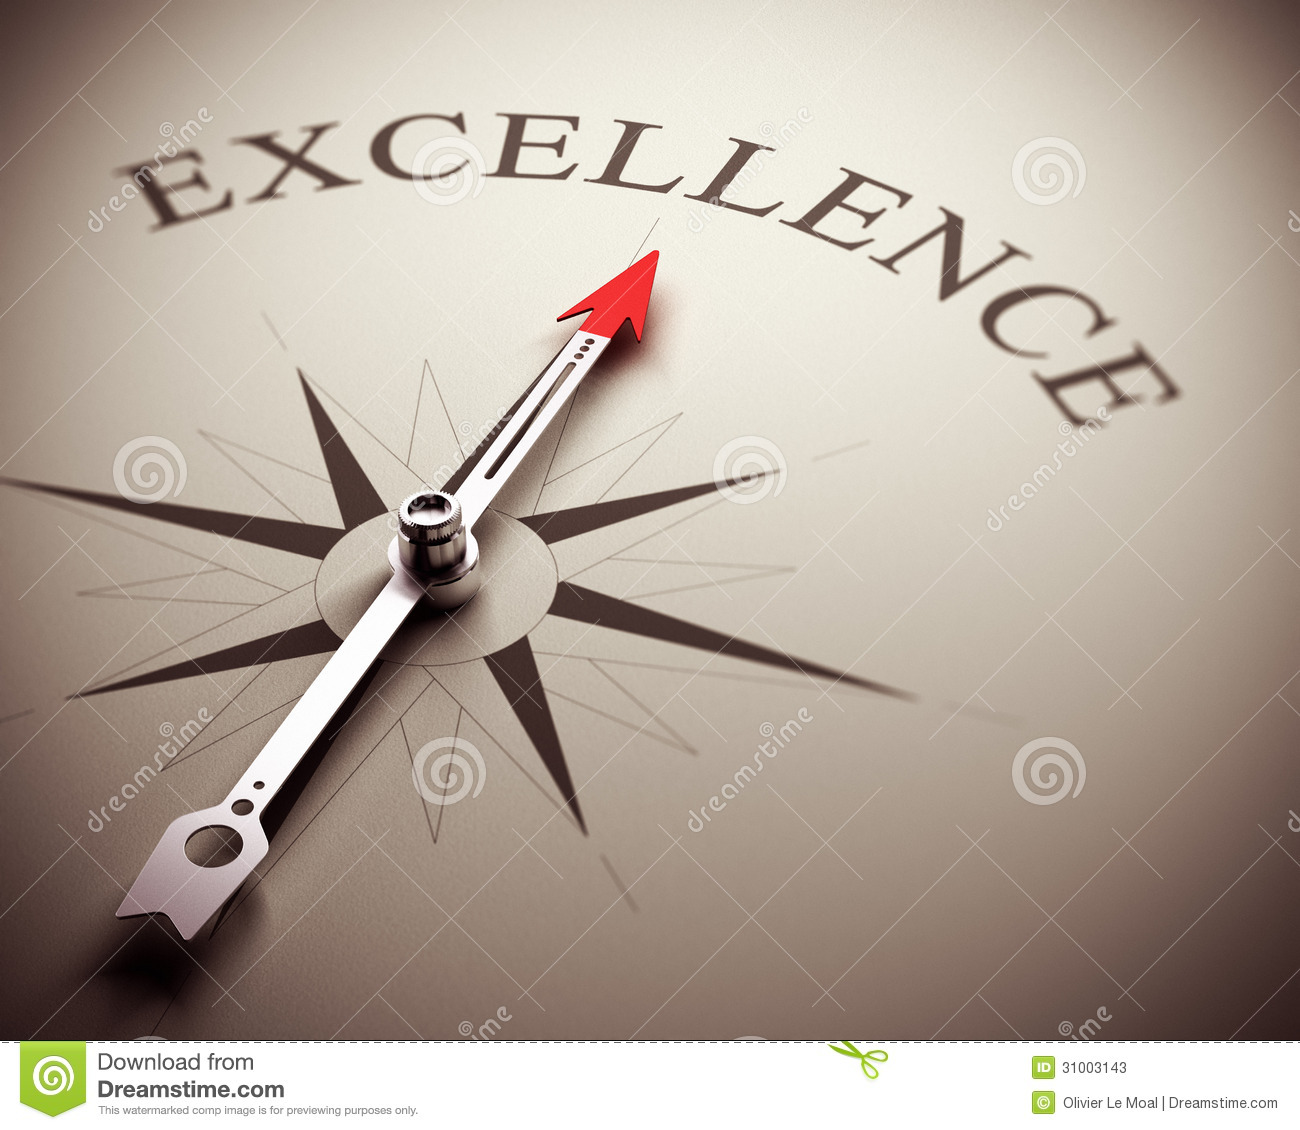 Excellence Stock Illustrations.